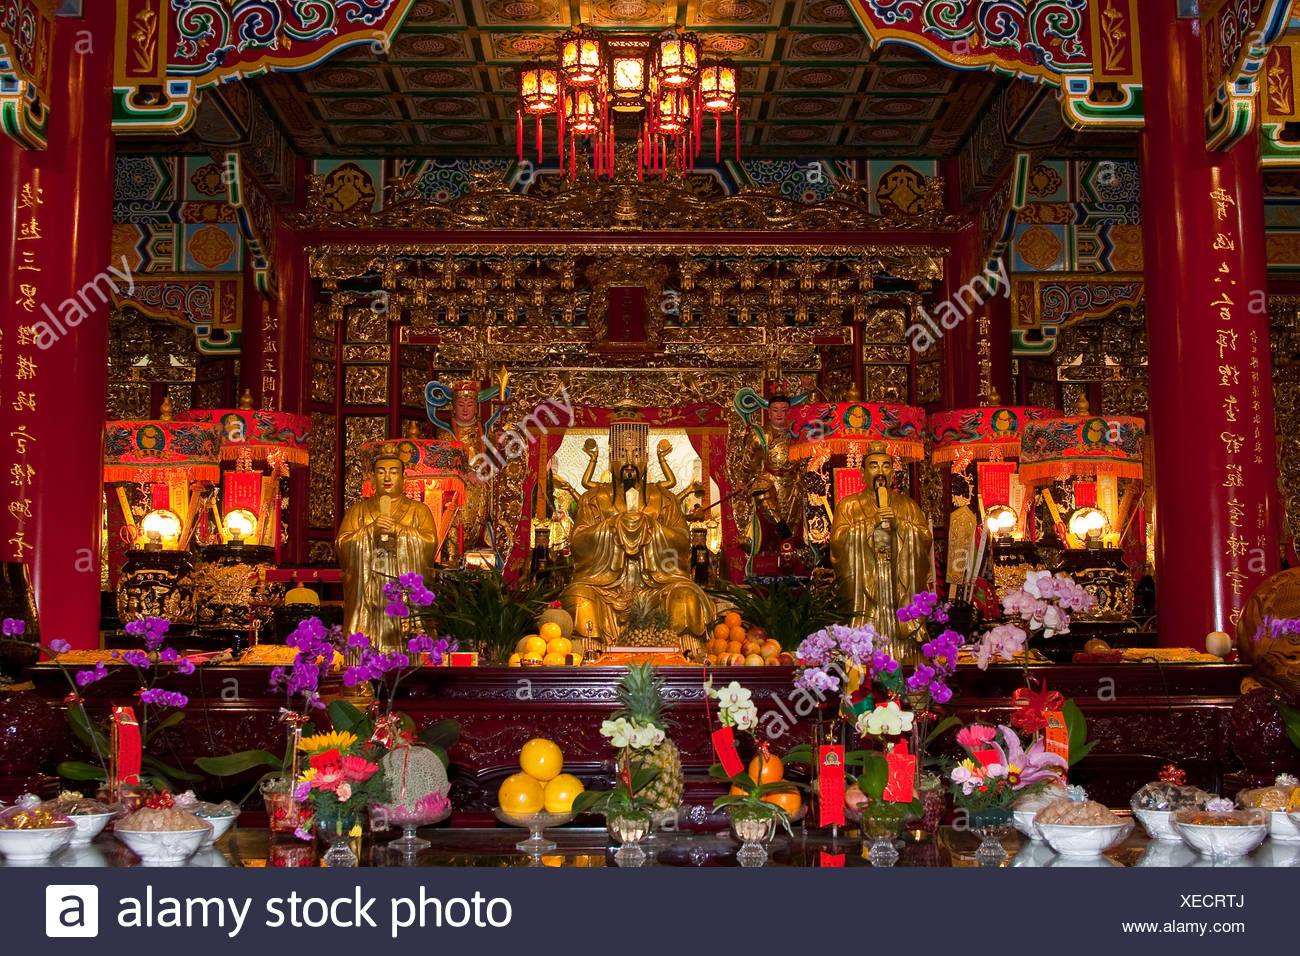 Asia, construction, constructions, portrait format, houses, homes, culture, art craft, pagoda, religion, sacred construction, sa - Stock Image